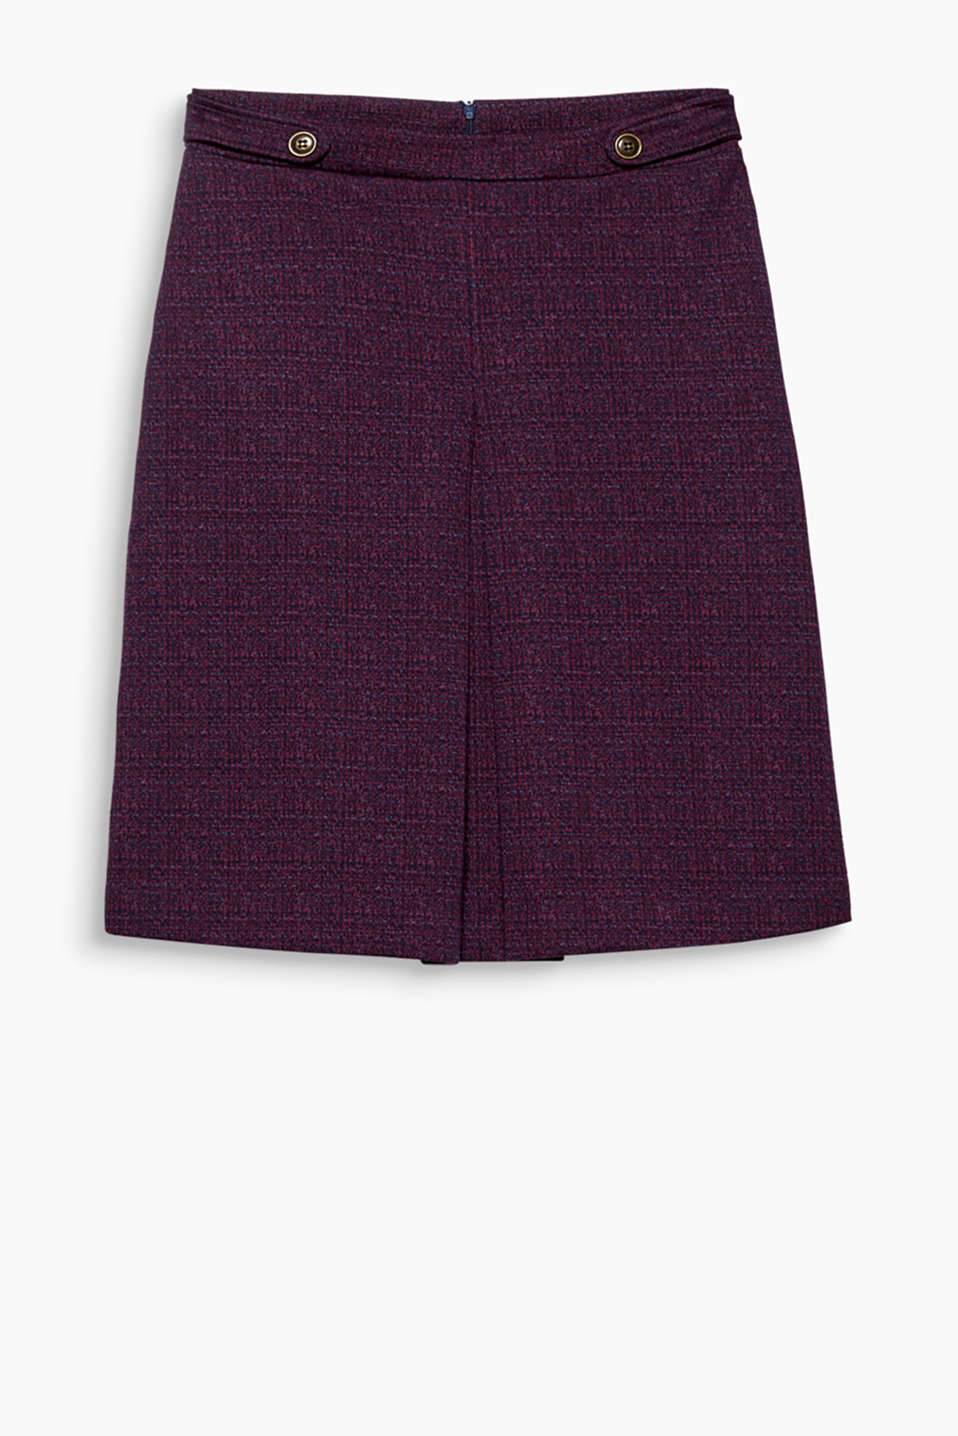 Print, jersey, retro! This midi skirt with an inverted pleat and waist straps is super stylish and mega comfy!